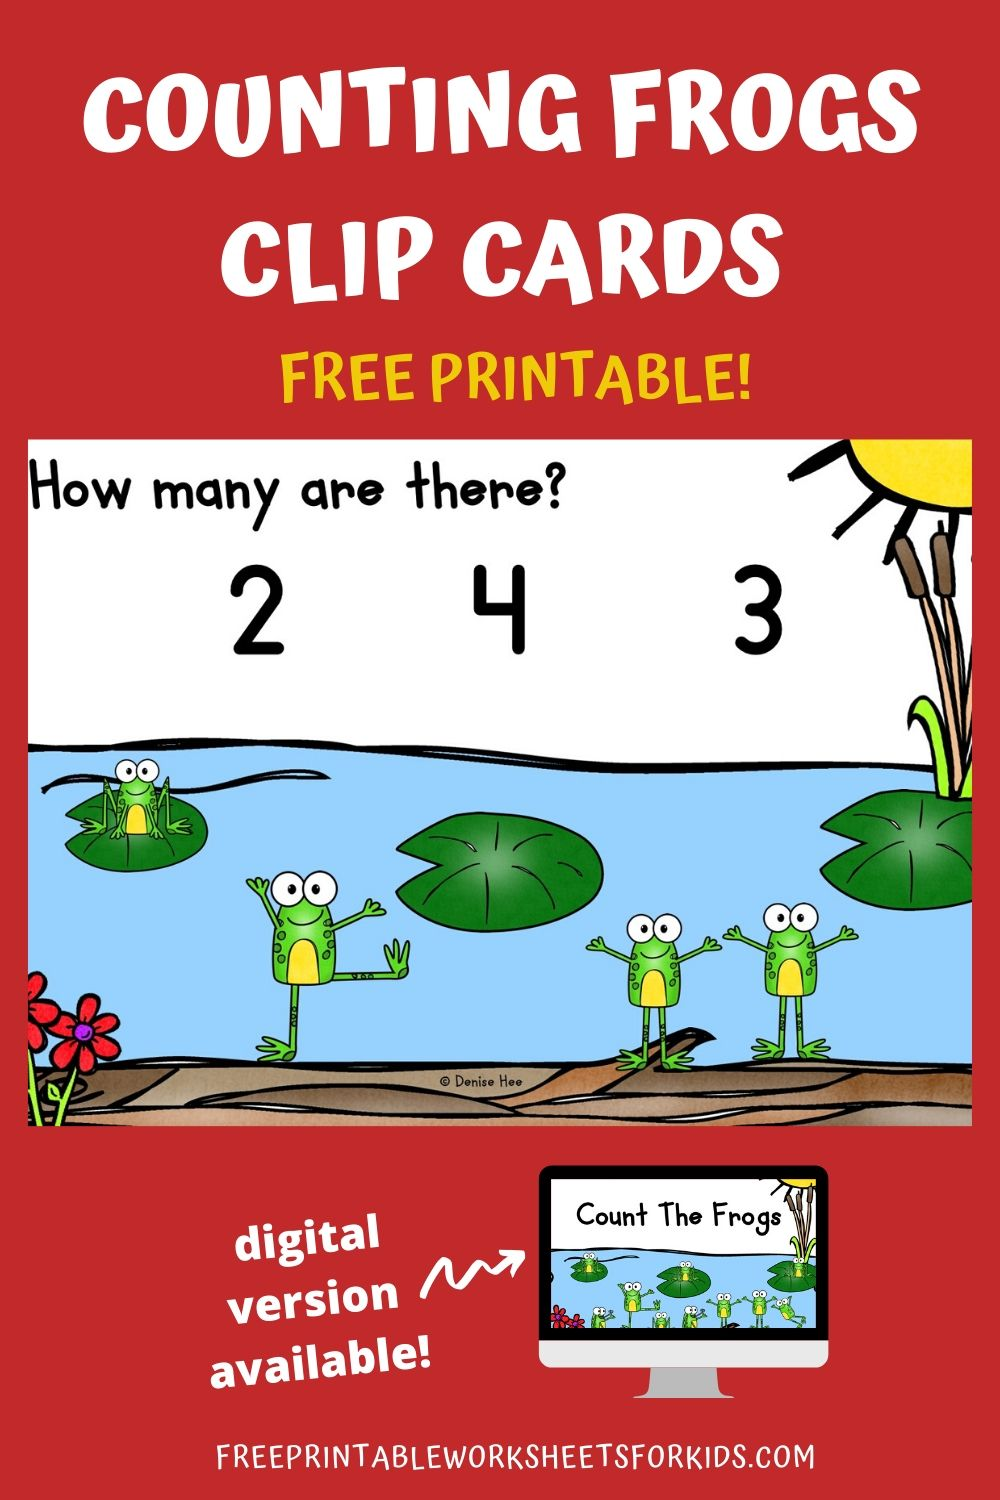 Count The Frogs 1-10 | Free Printable Worksheets For Kids | Kids will have a hopping good time playing with this adorable set of counting clip cards. Practice math while working on fine motor strength as your child counts how many frogs are by the pond.